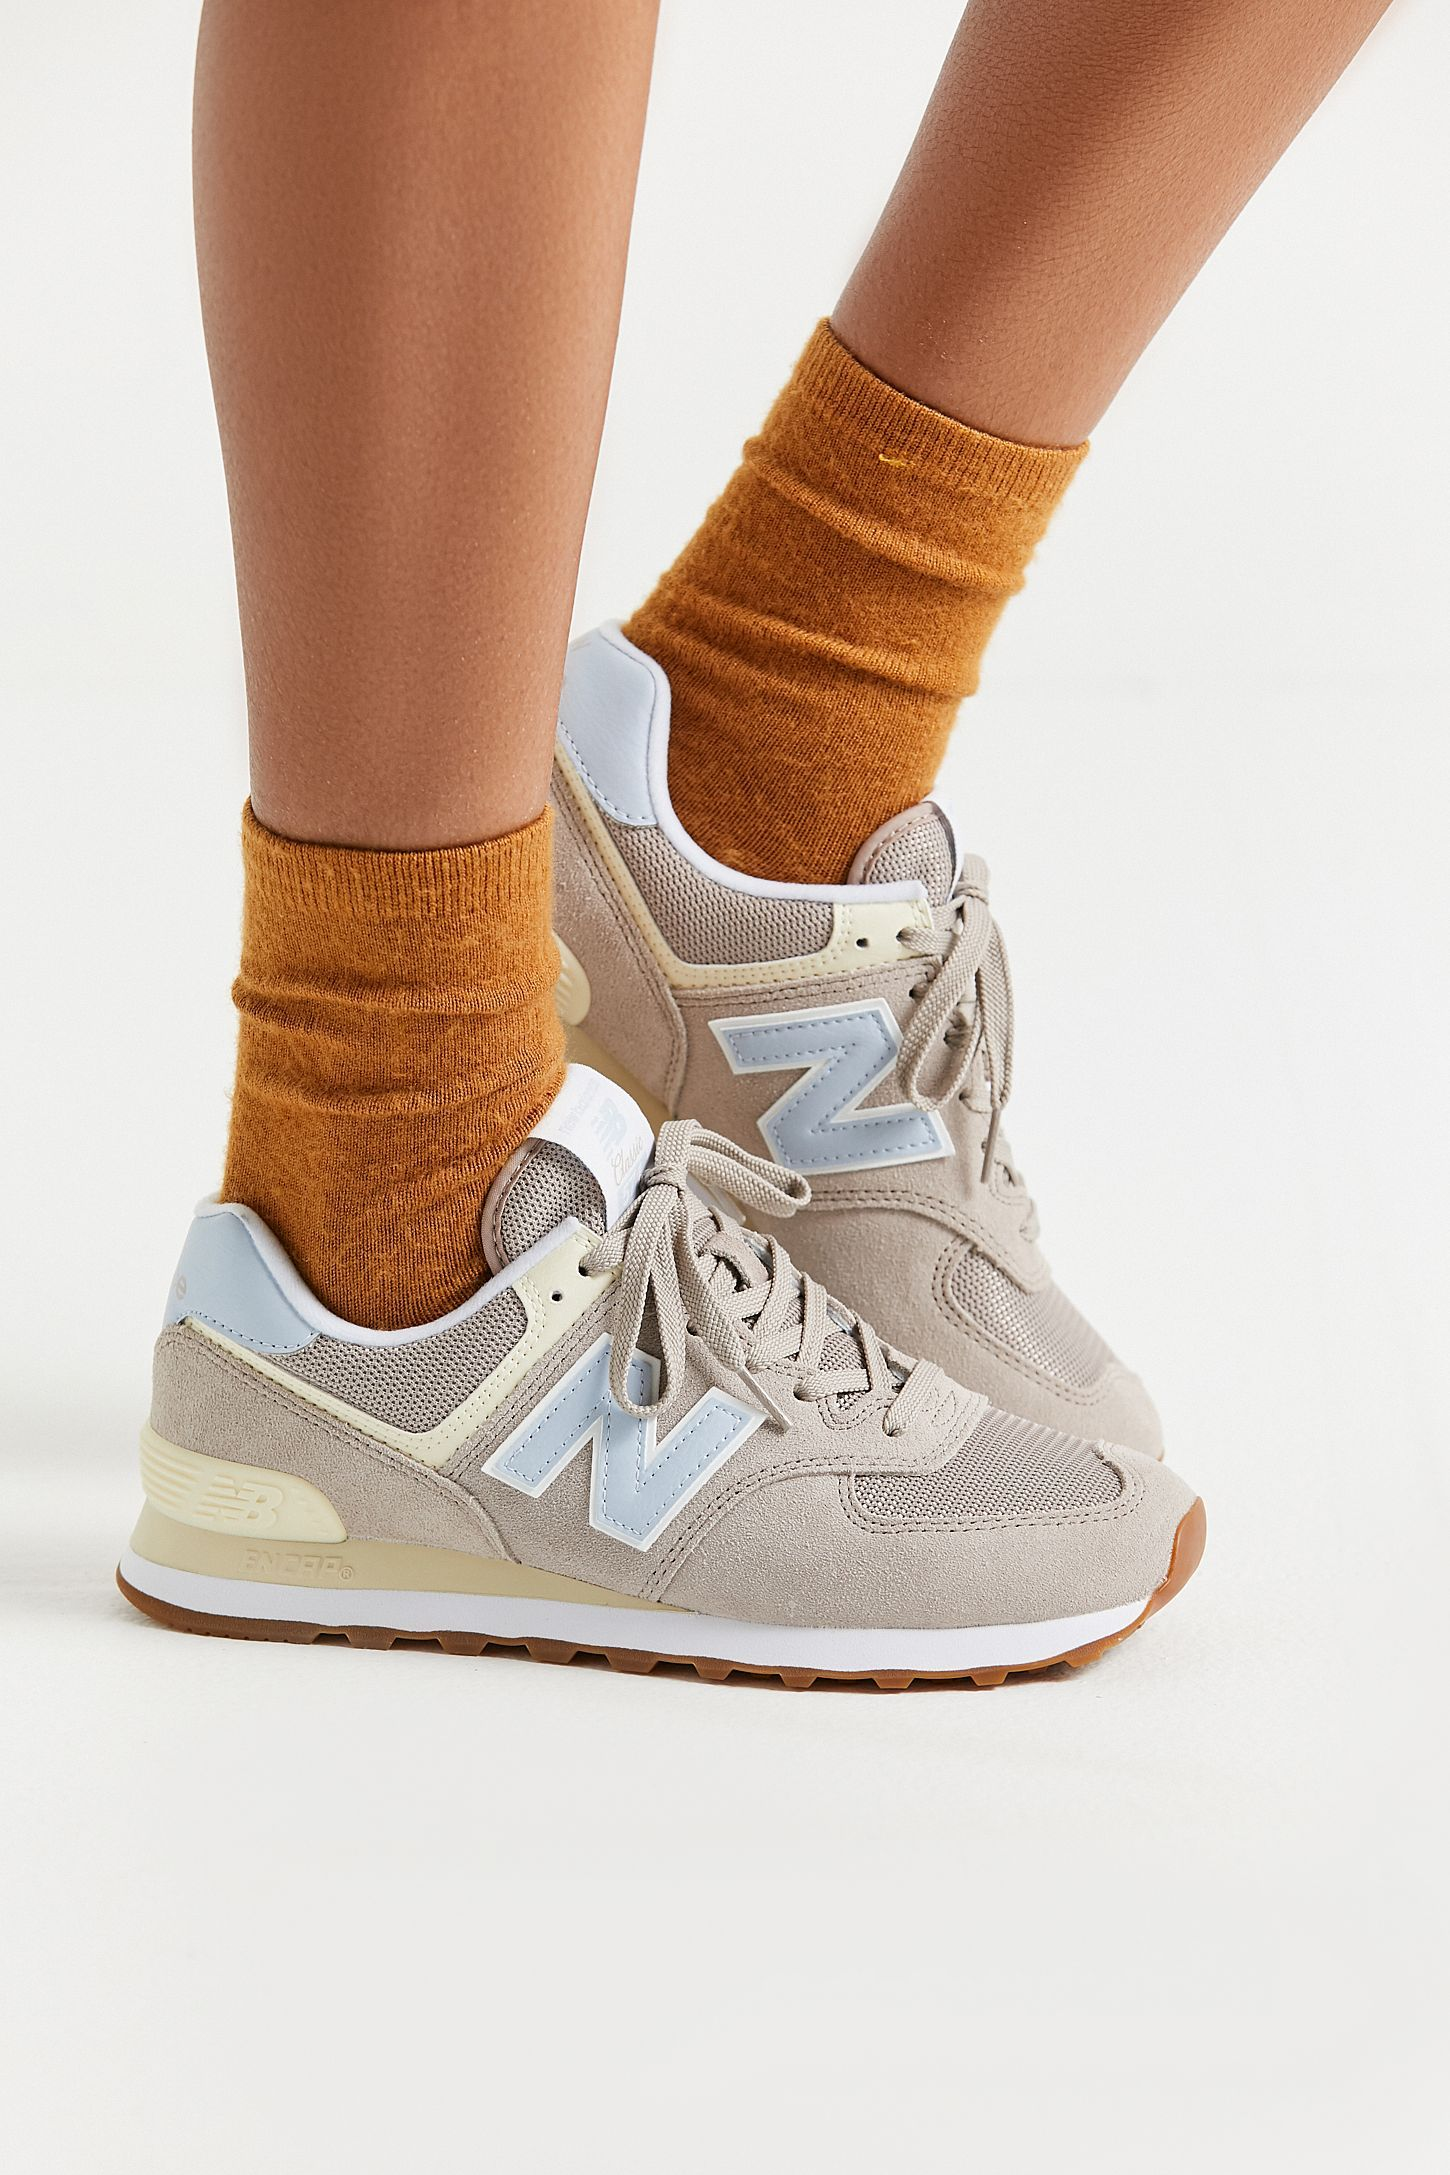 New Balance 574 Summer Dusk Sneaker | footwear in 2019 | New